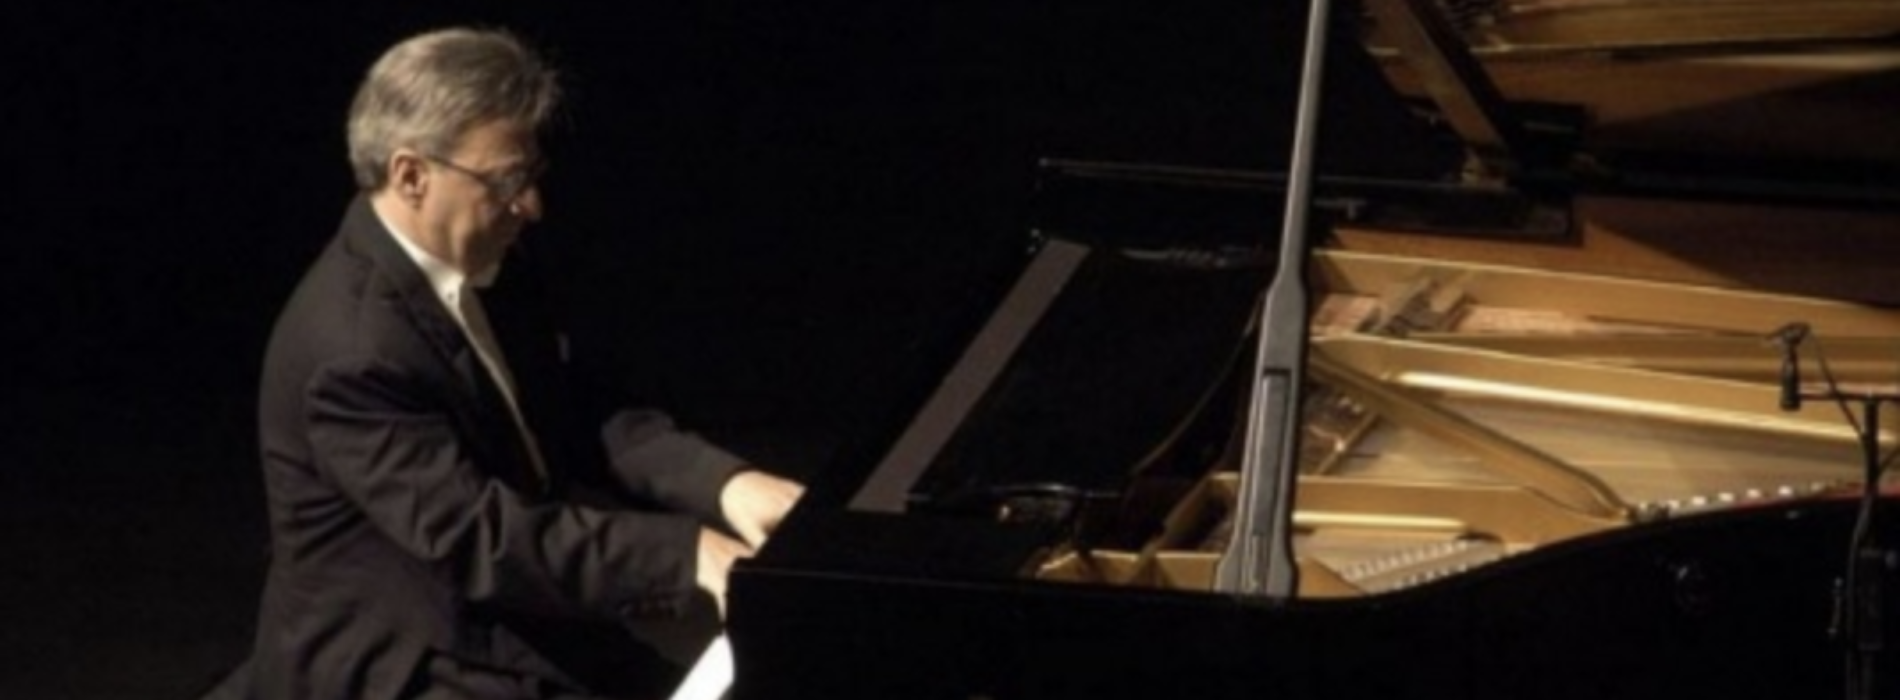 Summer Concert, Pianofestival al via con Massimiliano Damerini